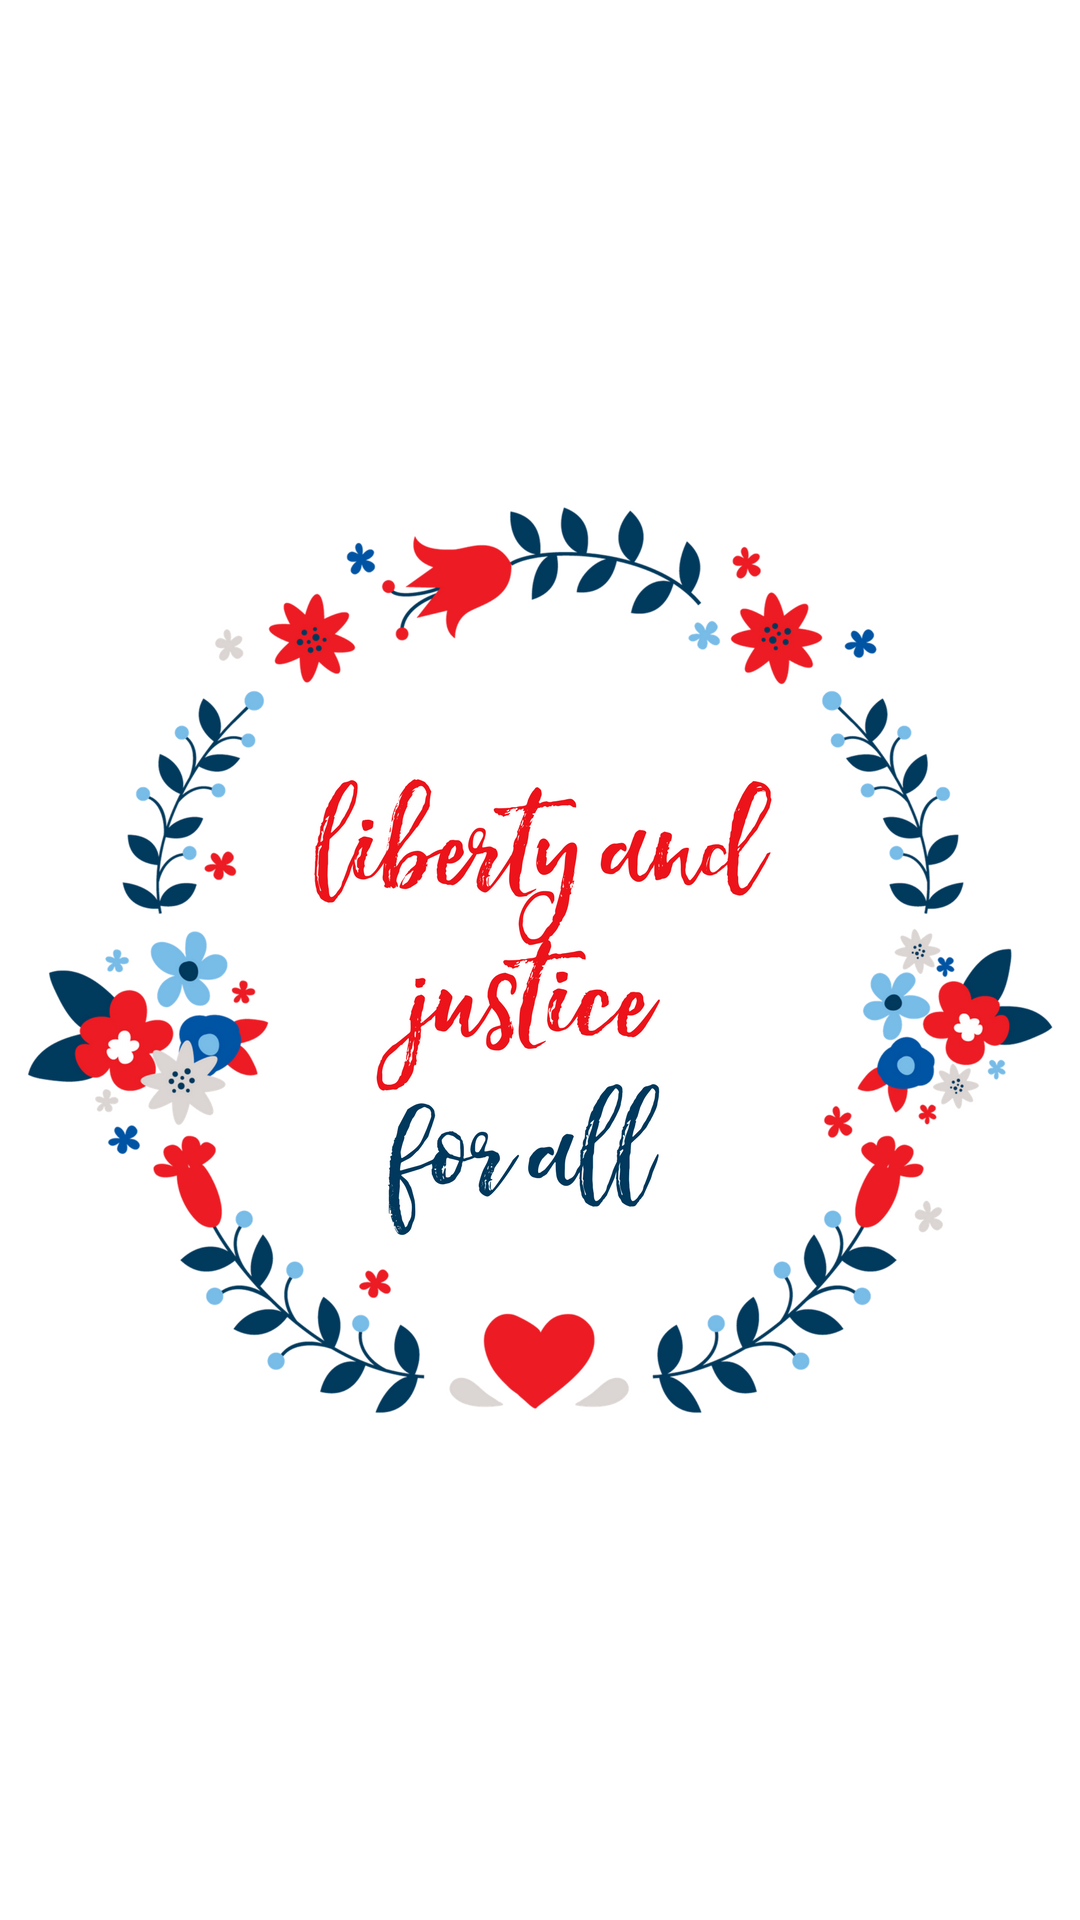 Liberty and justice for all smartphone wallpaperg 1 0801 920 liberty and justice for all smartphone wallpaperg 1 voltagebd Choice Image